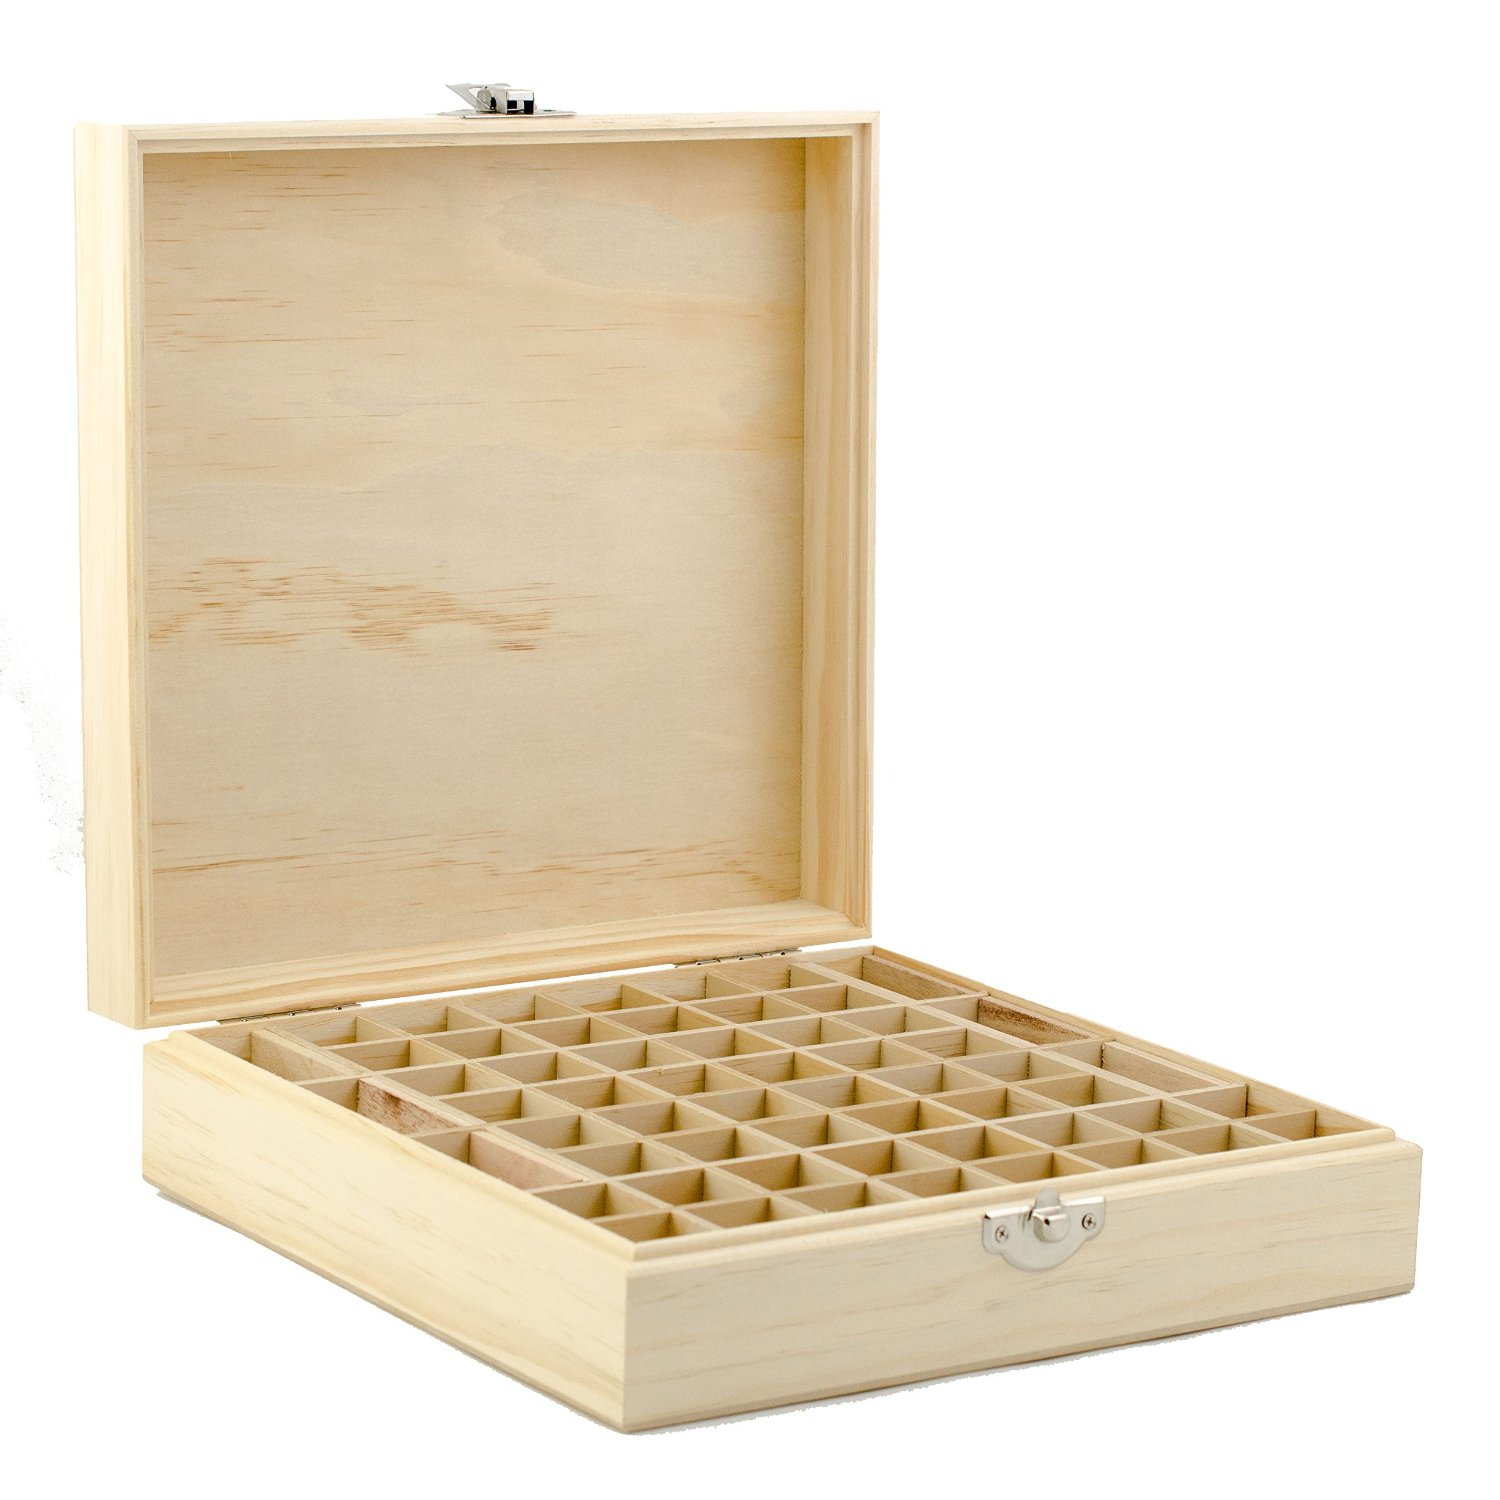 Wooden Essential Oil Box - Holds 52 (5-15 ml) & 6 (10ml Roll-On) Essential Oil Bottles - Perfect Essential Oils Case for Presentations - Protects Your Oils From Damaging Sunlight